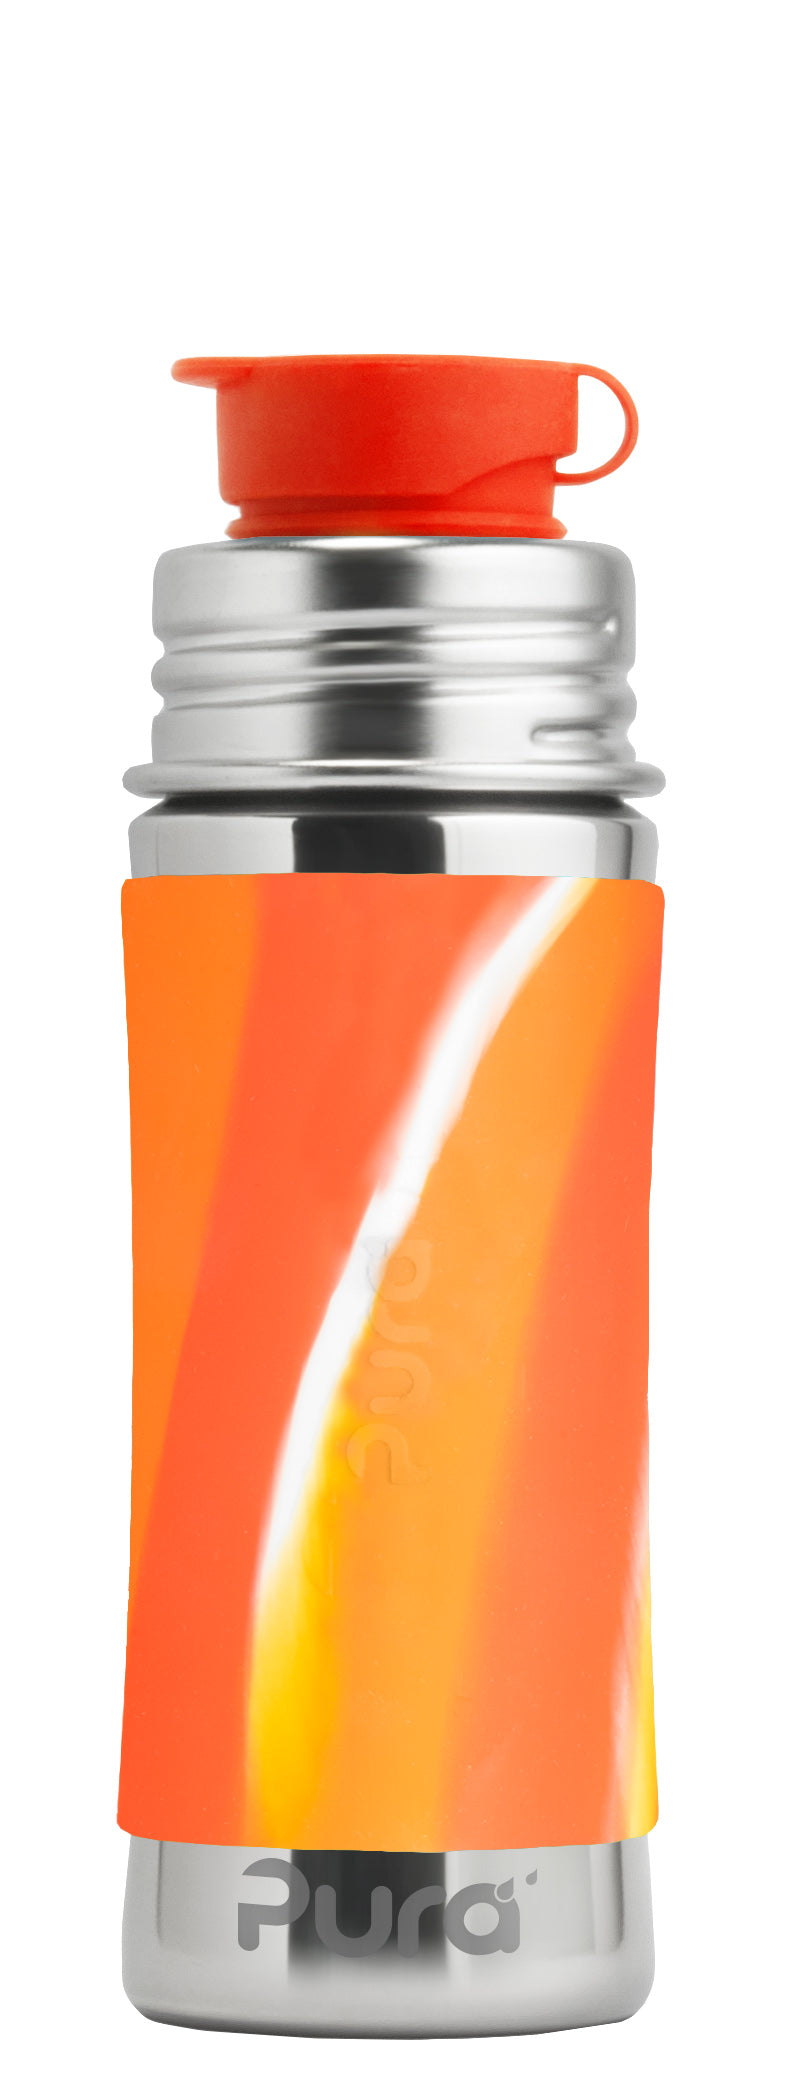 Pura Sport Mini 325 Stainless Steel Bottle - Orange Swirl